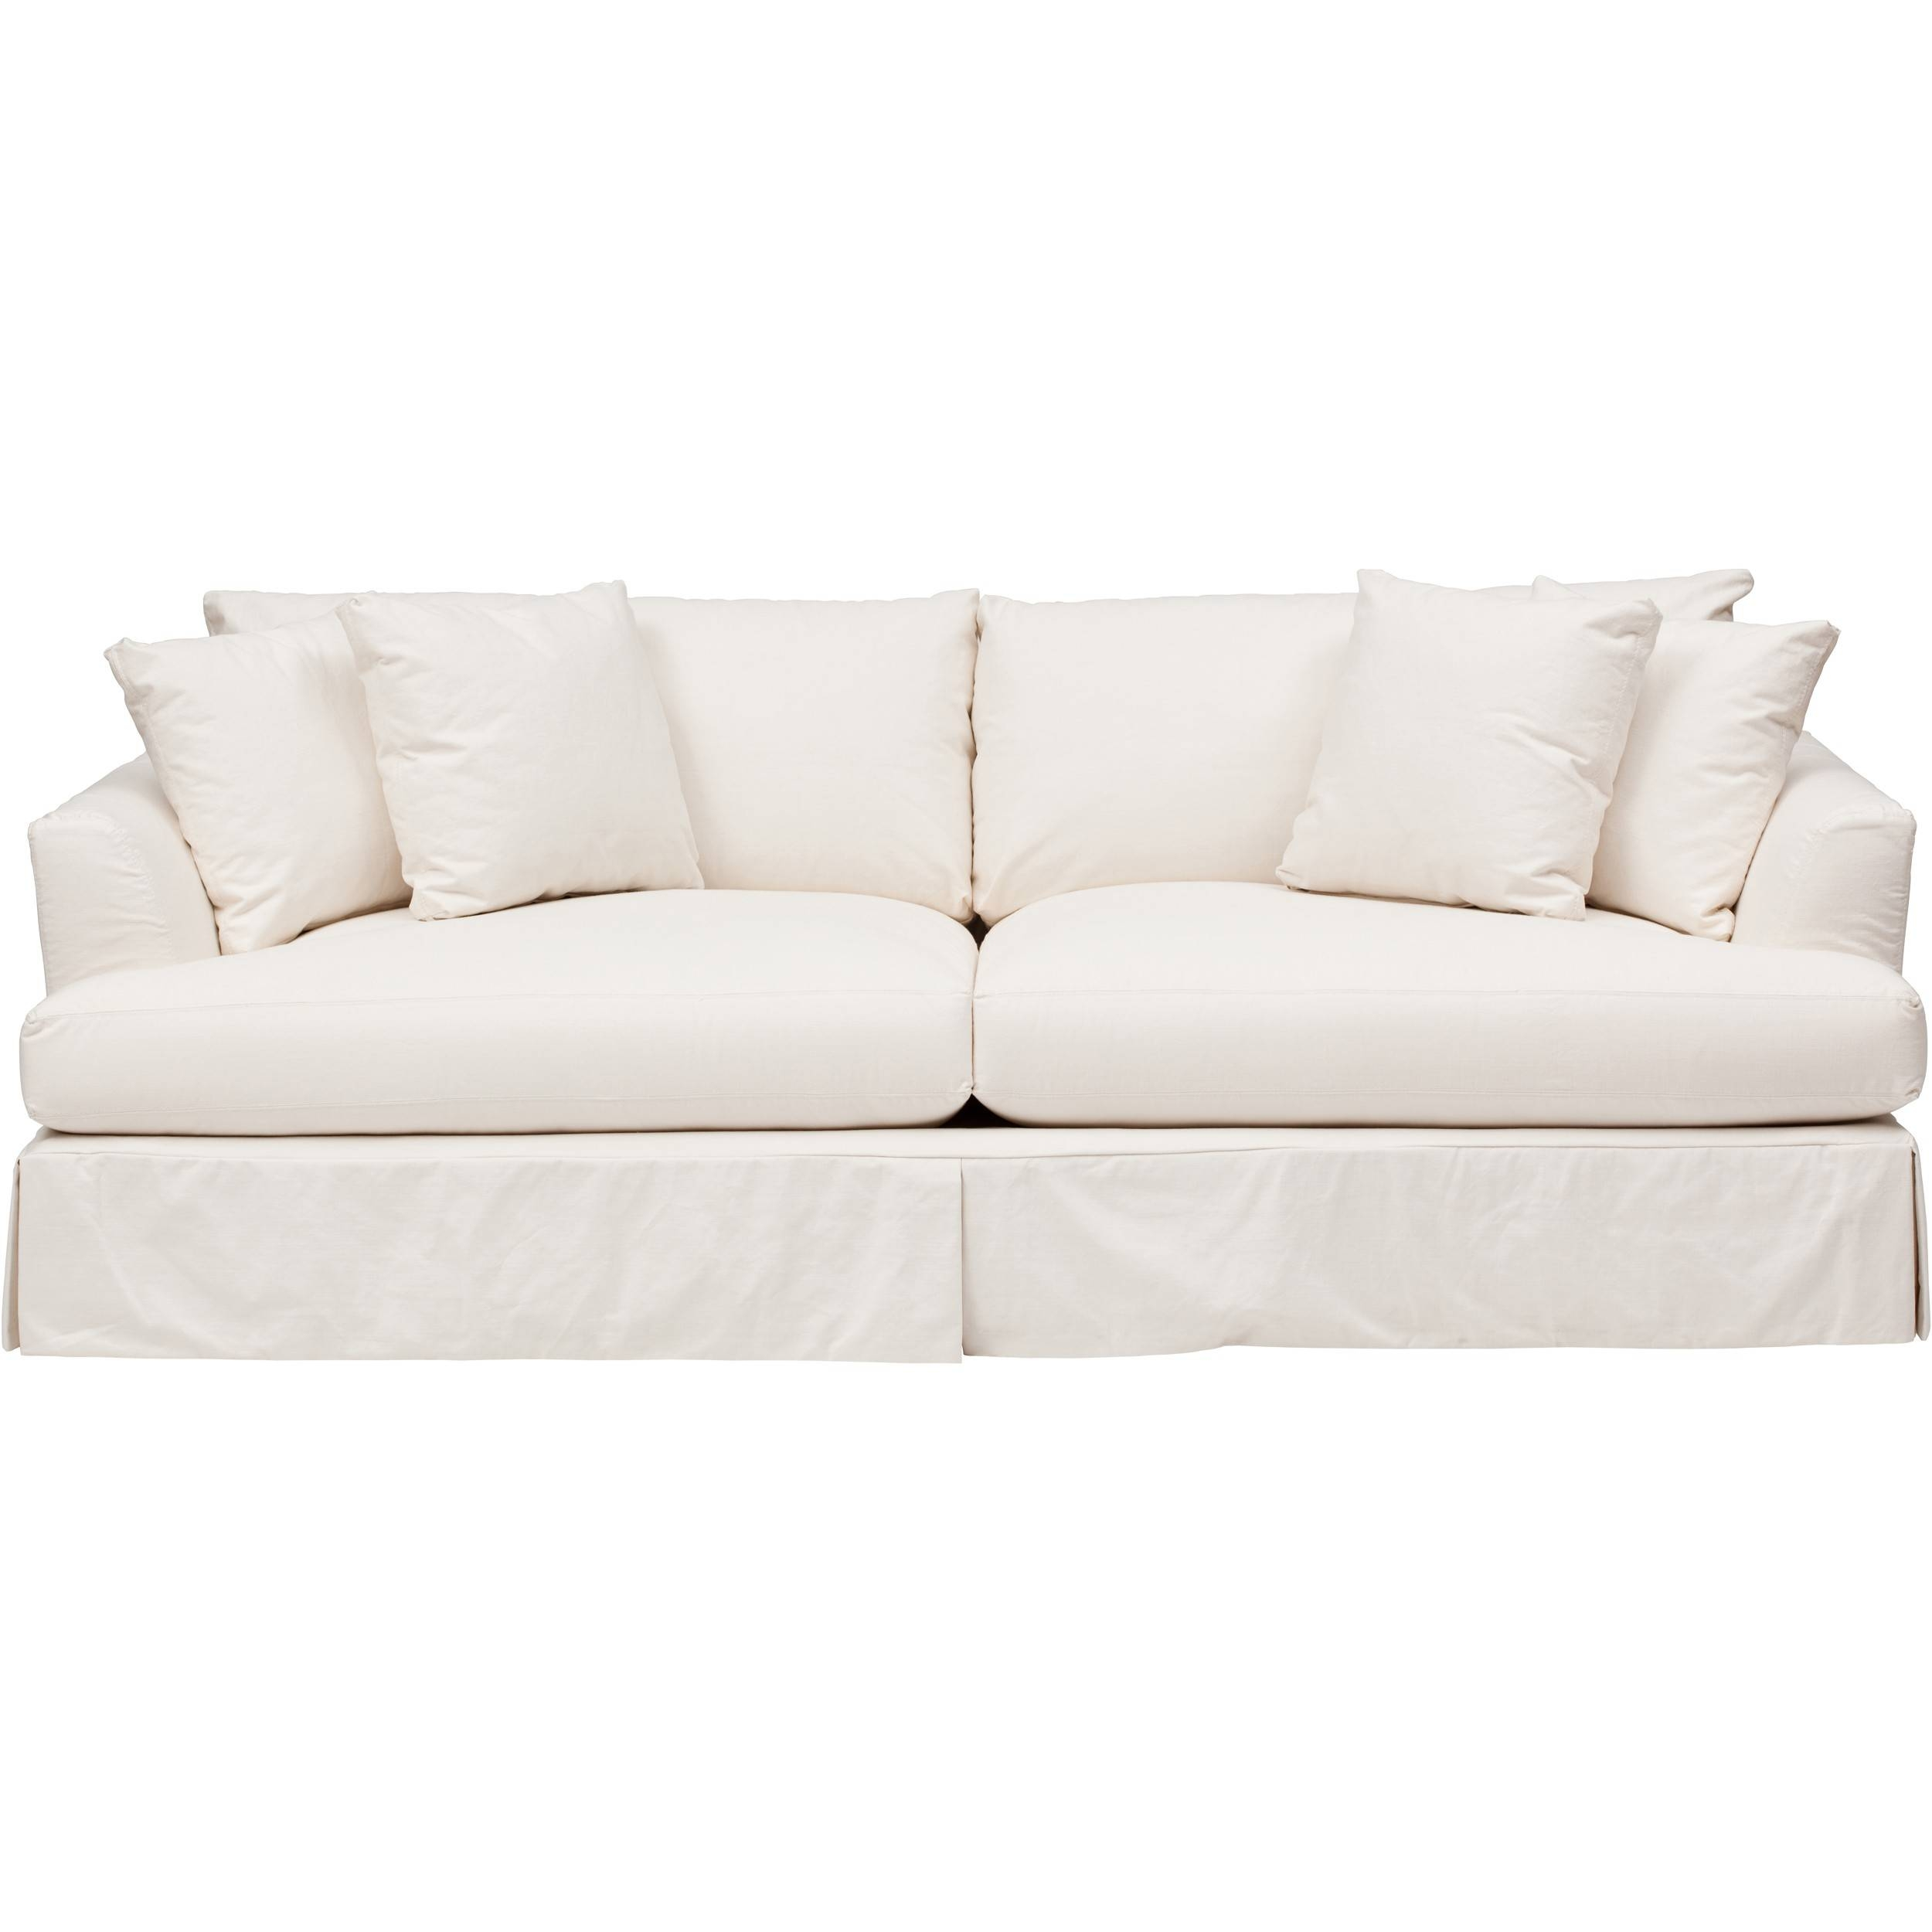 Furniture: Have Fun Changing The Look And Feel With Sofa regarding 3 Piece Sofa Covers (Image 6 of 15)